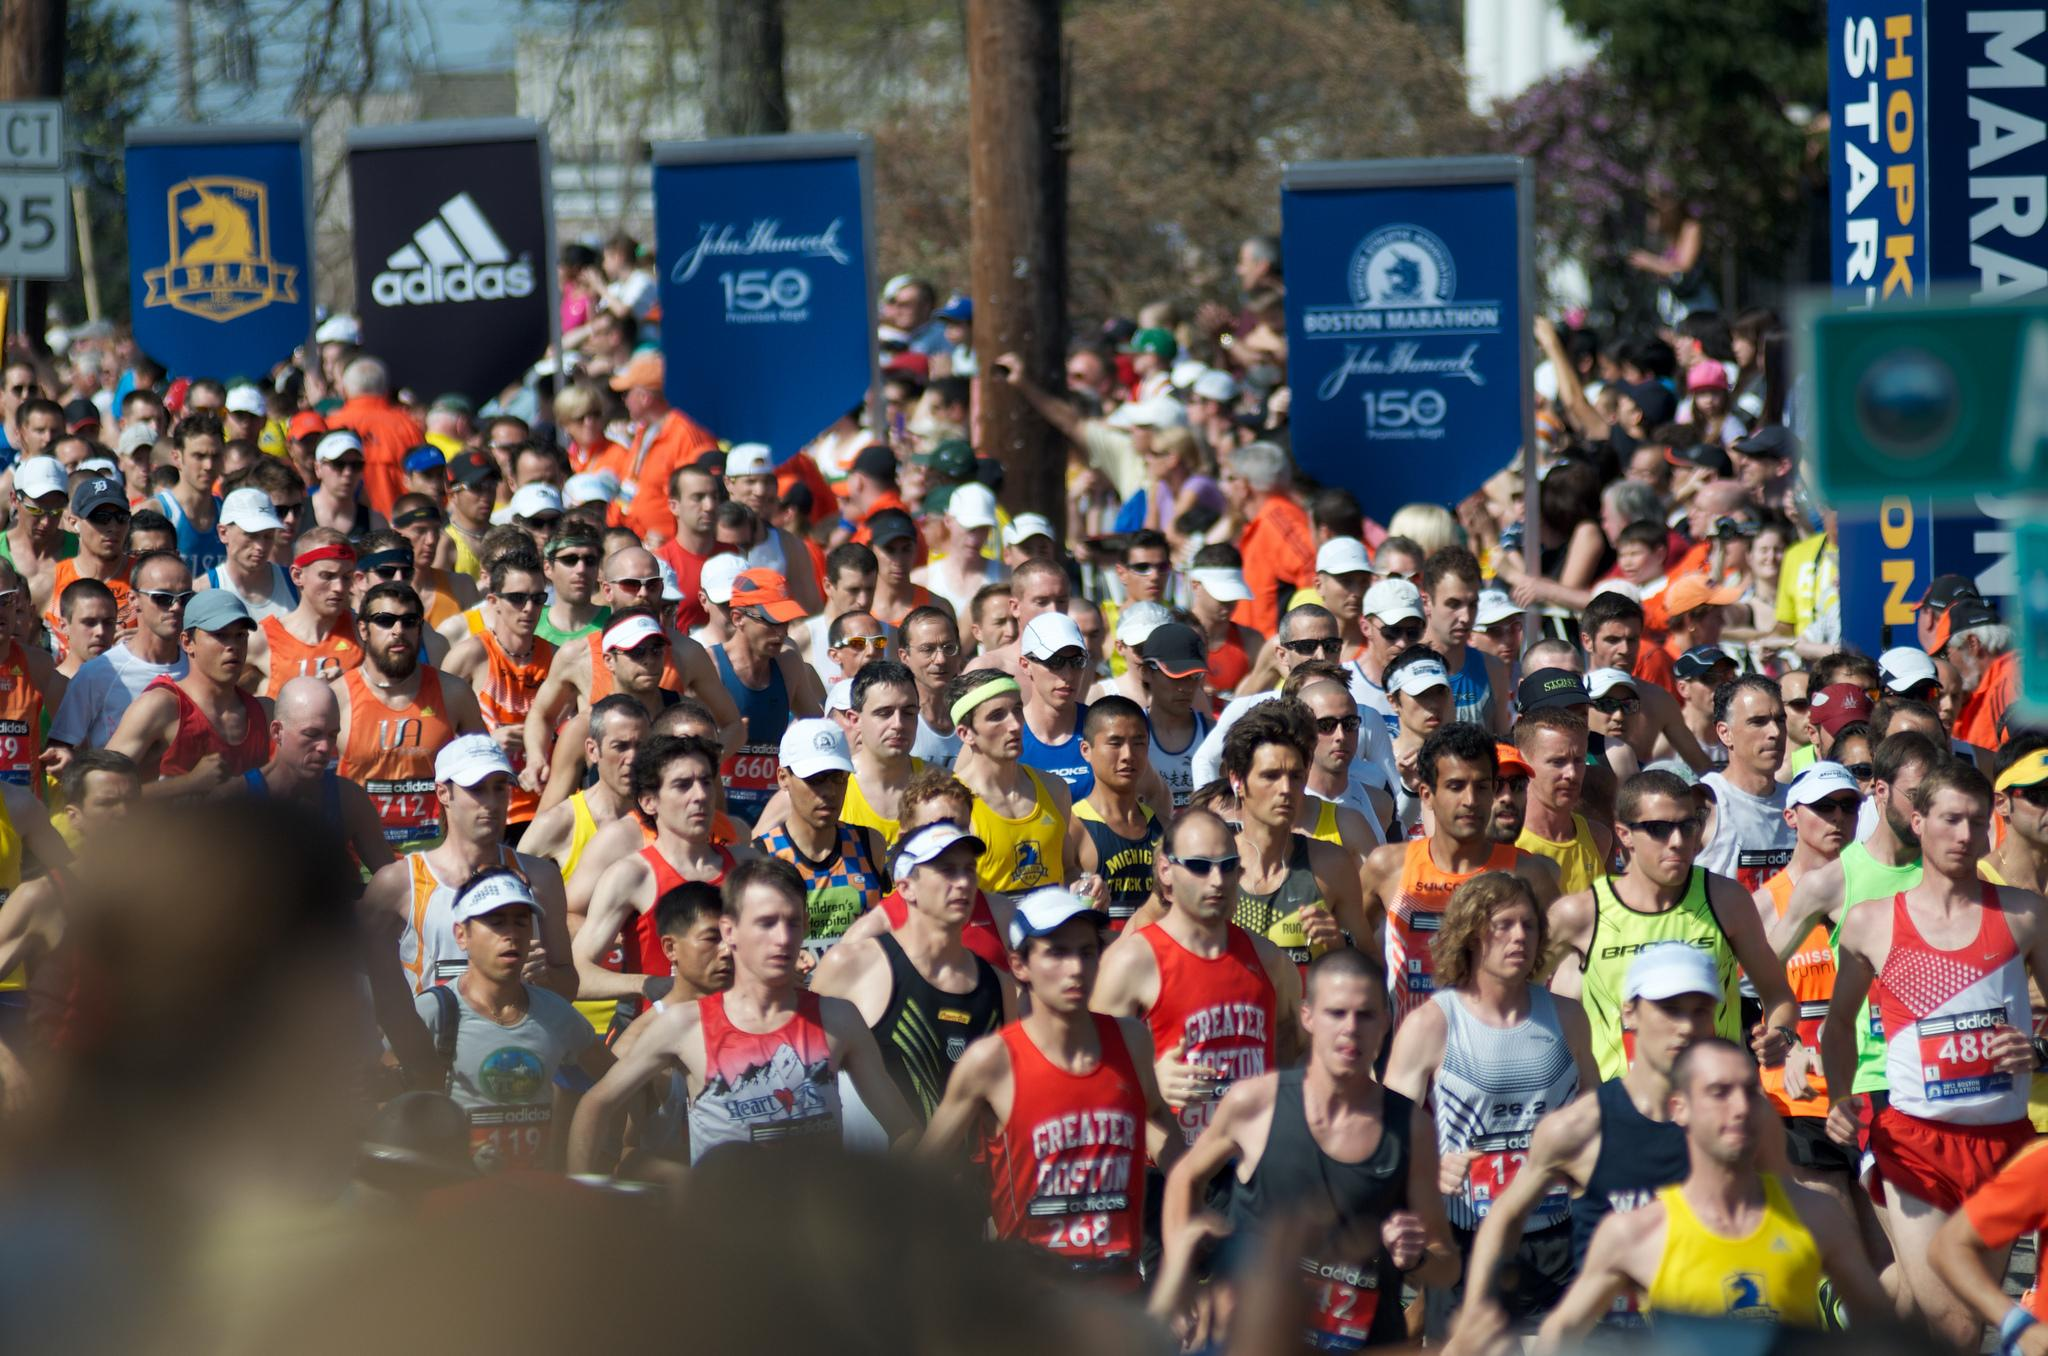 Runners in the 116th Boston Marathon take off with the starting gun at the starting line in Hopkinton. Photo by Ryan Hutton, Boston University News Service, made available by BU Interactive News on Flickr (CC BY 2.0)